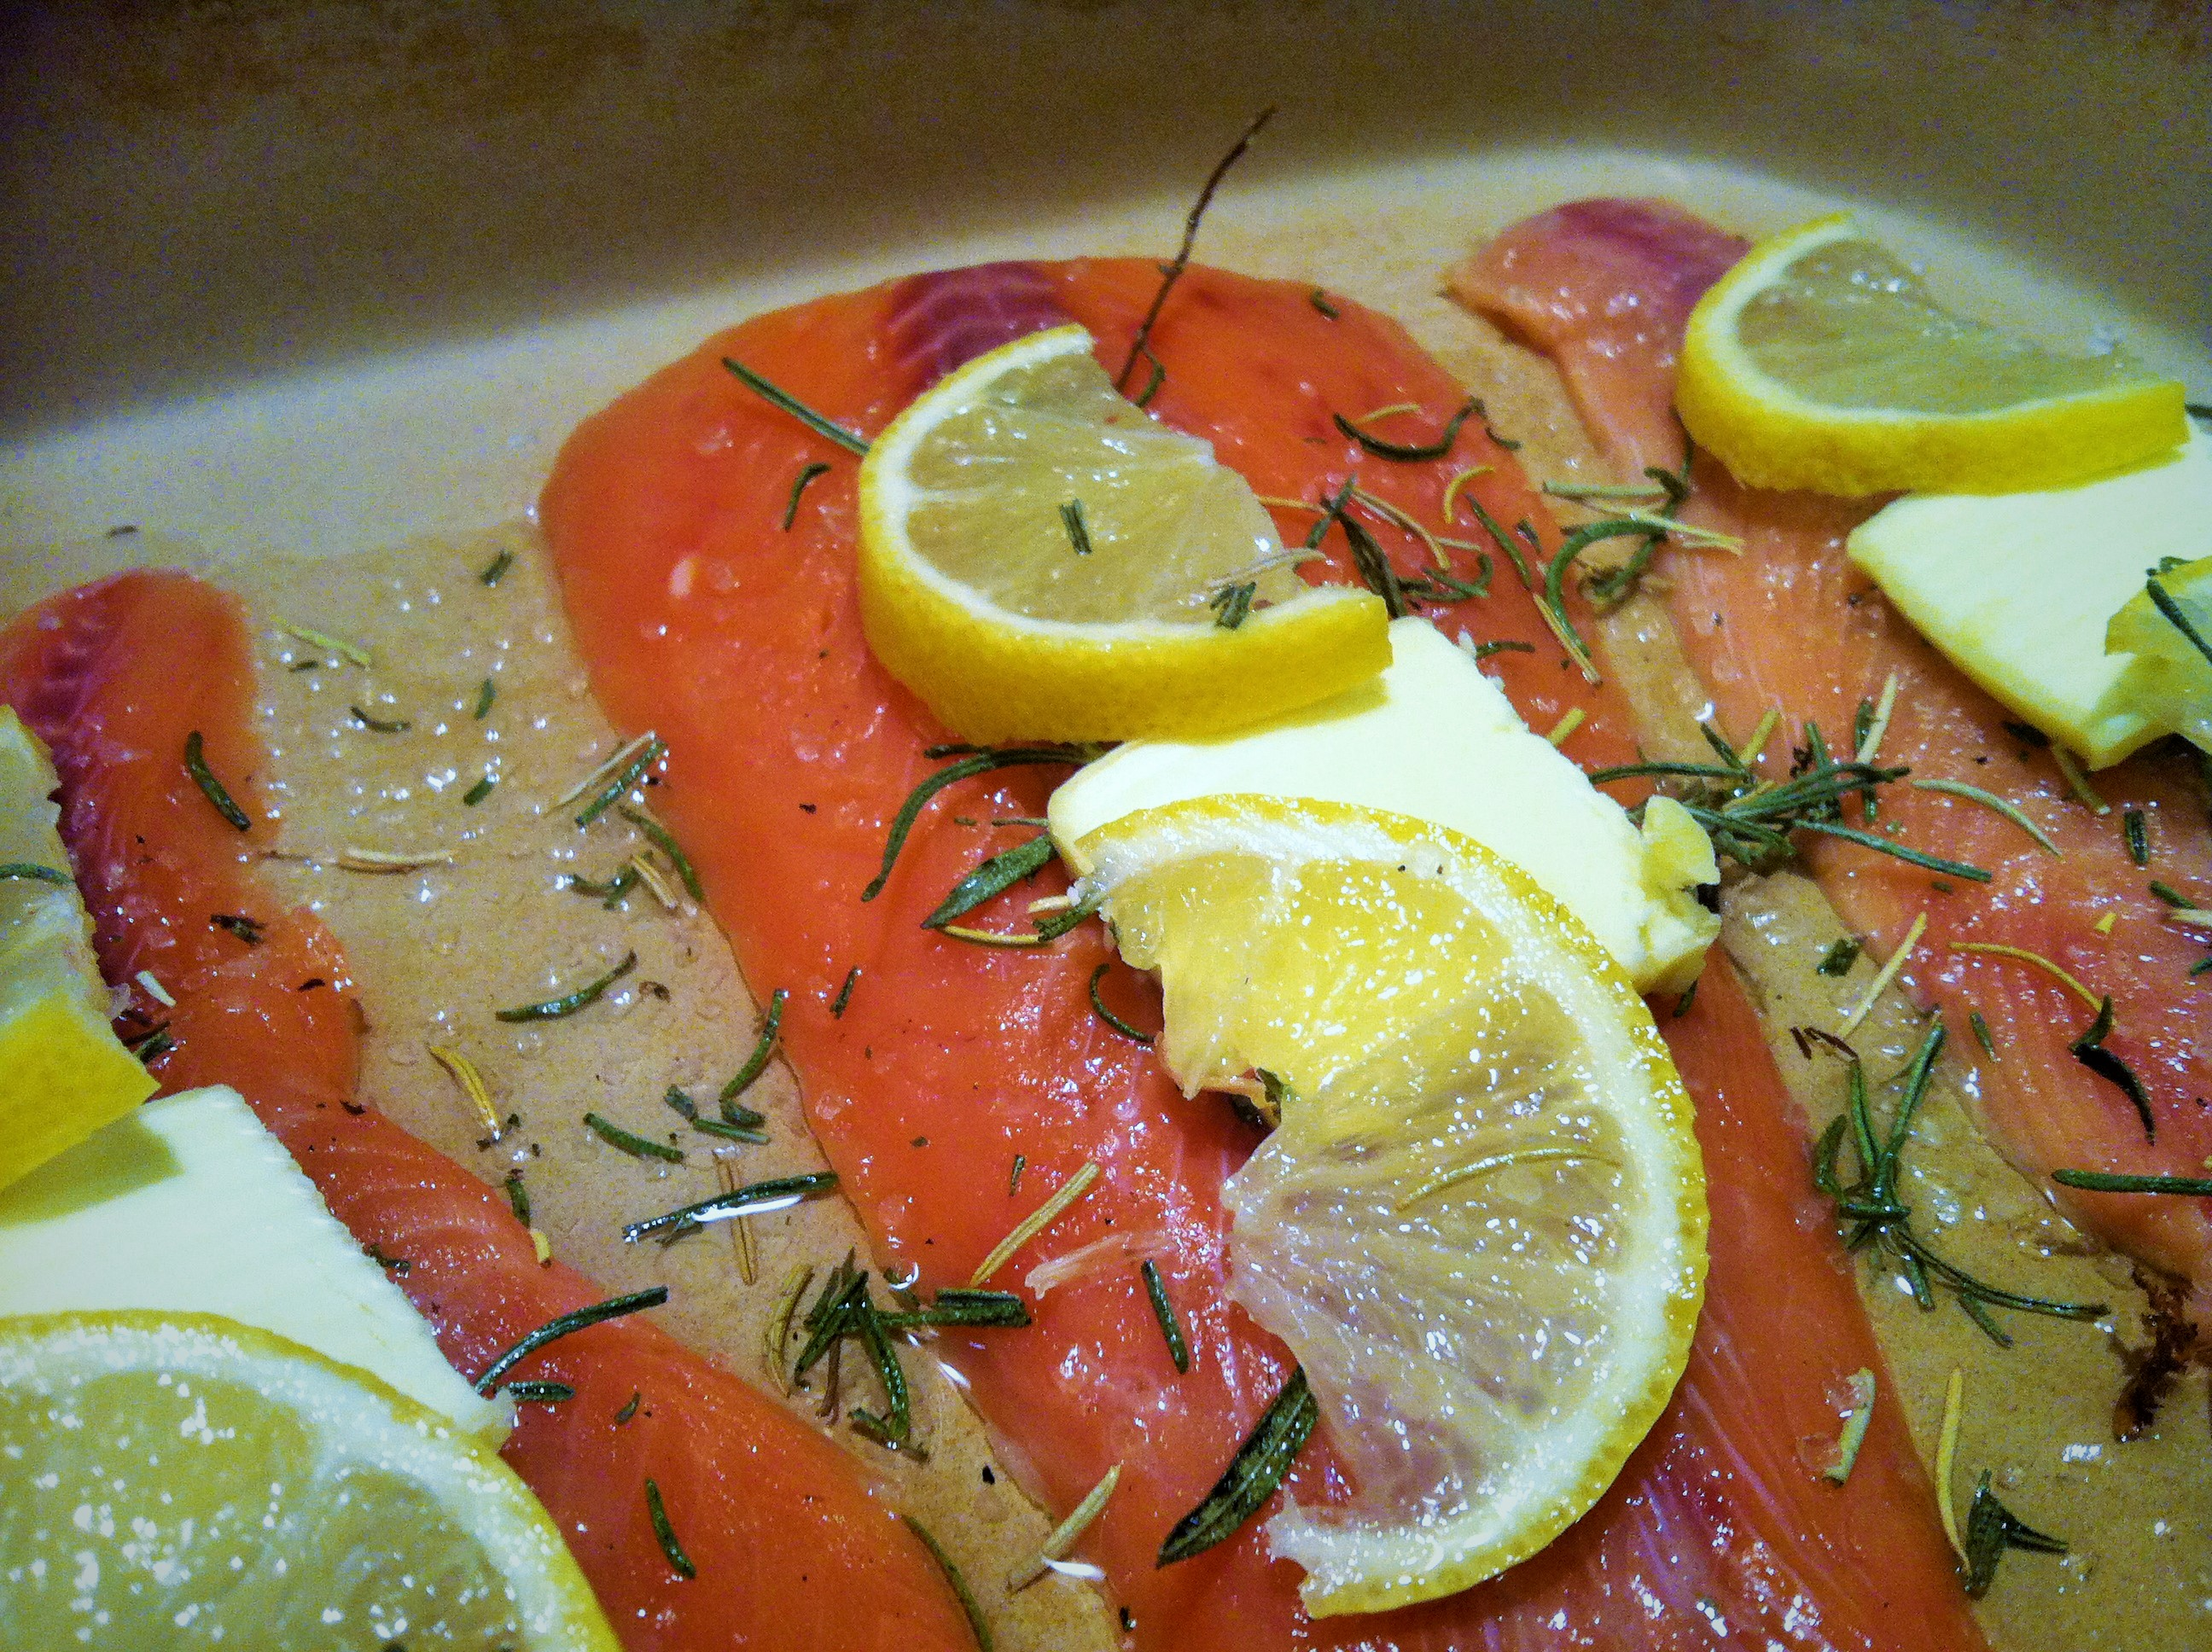 Prepped salmon with butter, lemons and rosemary salt